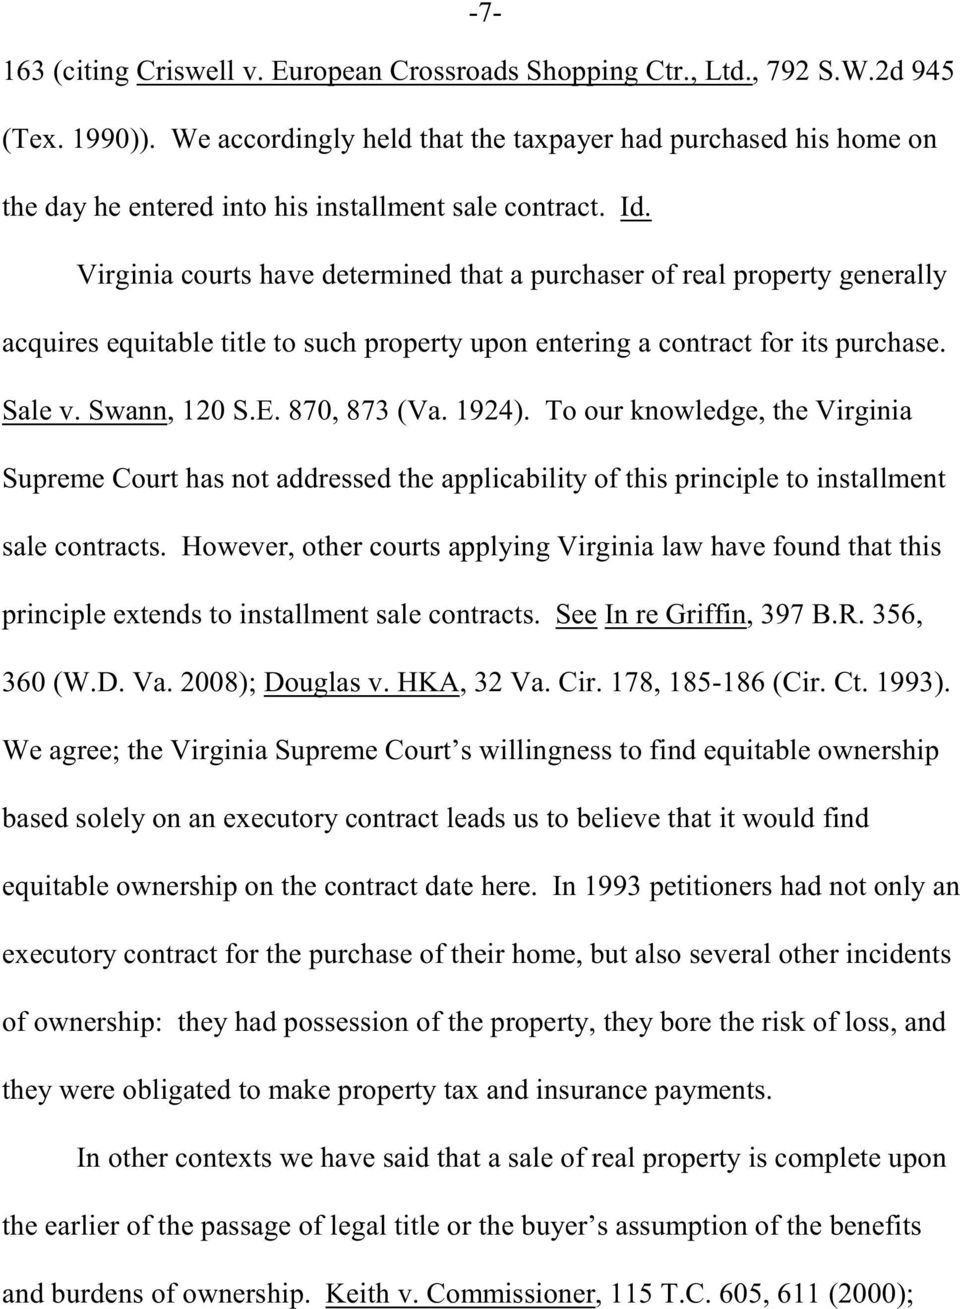 Virginia courts have determined that a purchaser of real property generally acquires equitable title to such property upon entering a contract for its purchase. Sale v. Swann, 120 S.E. 870, 873 (Va.